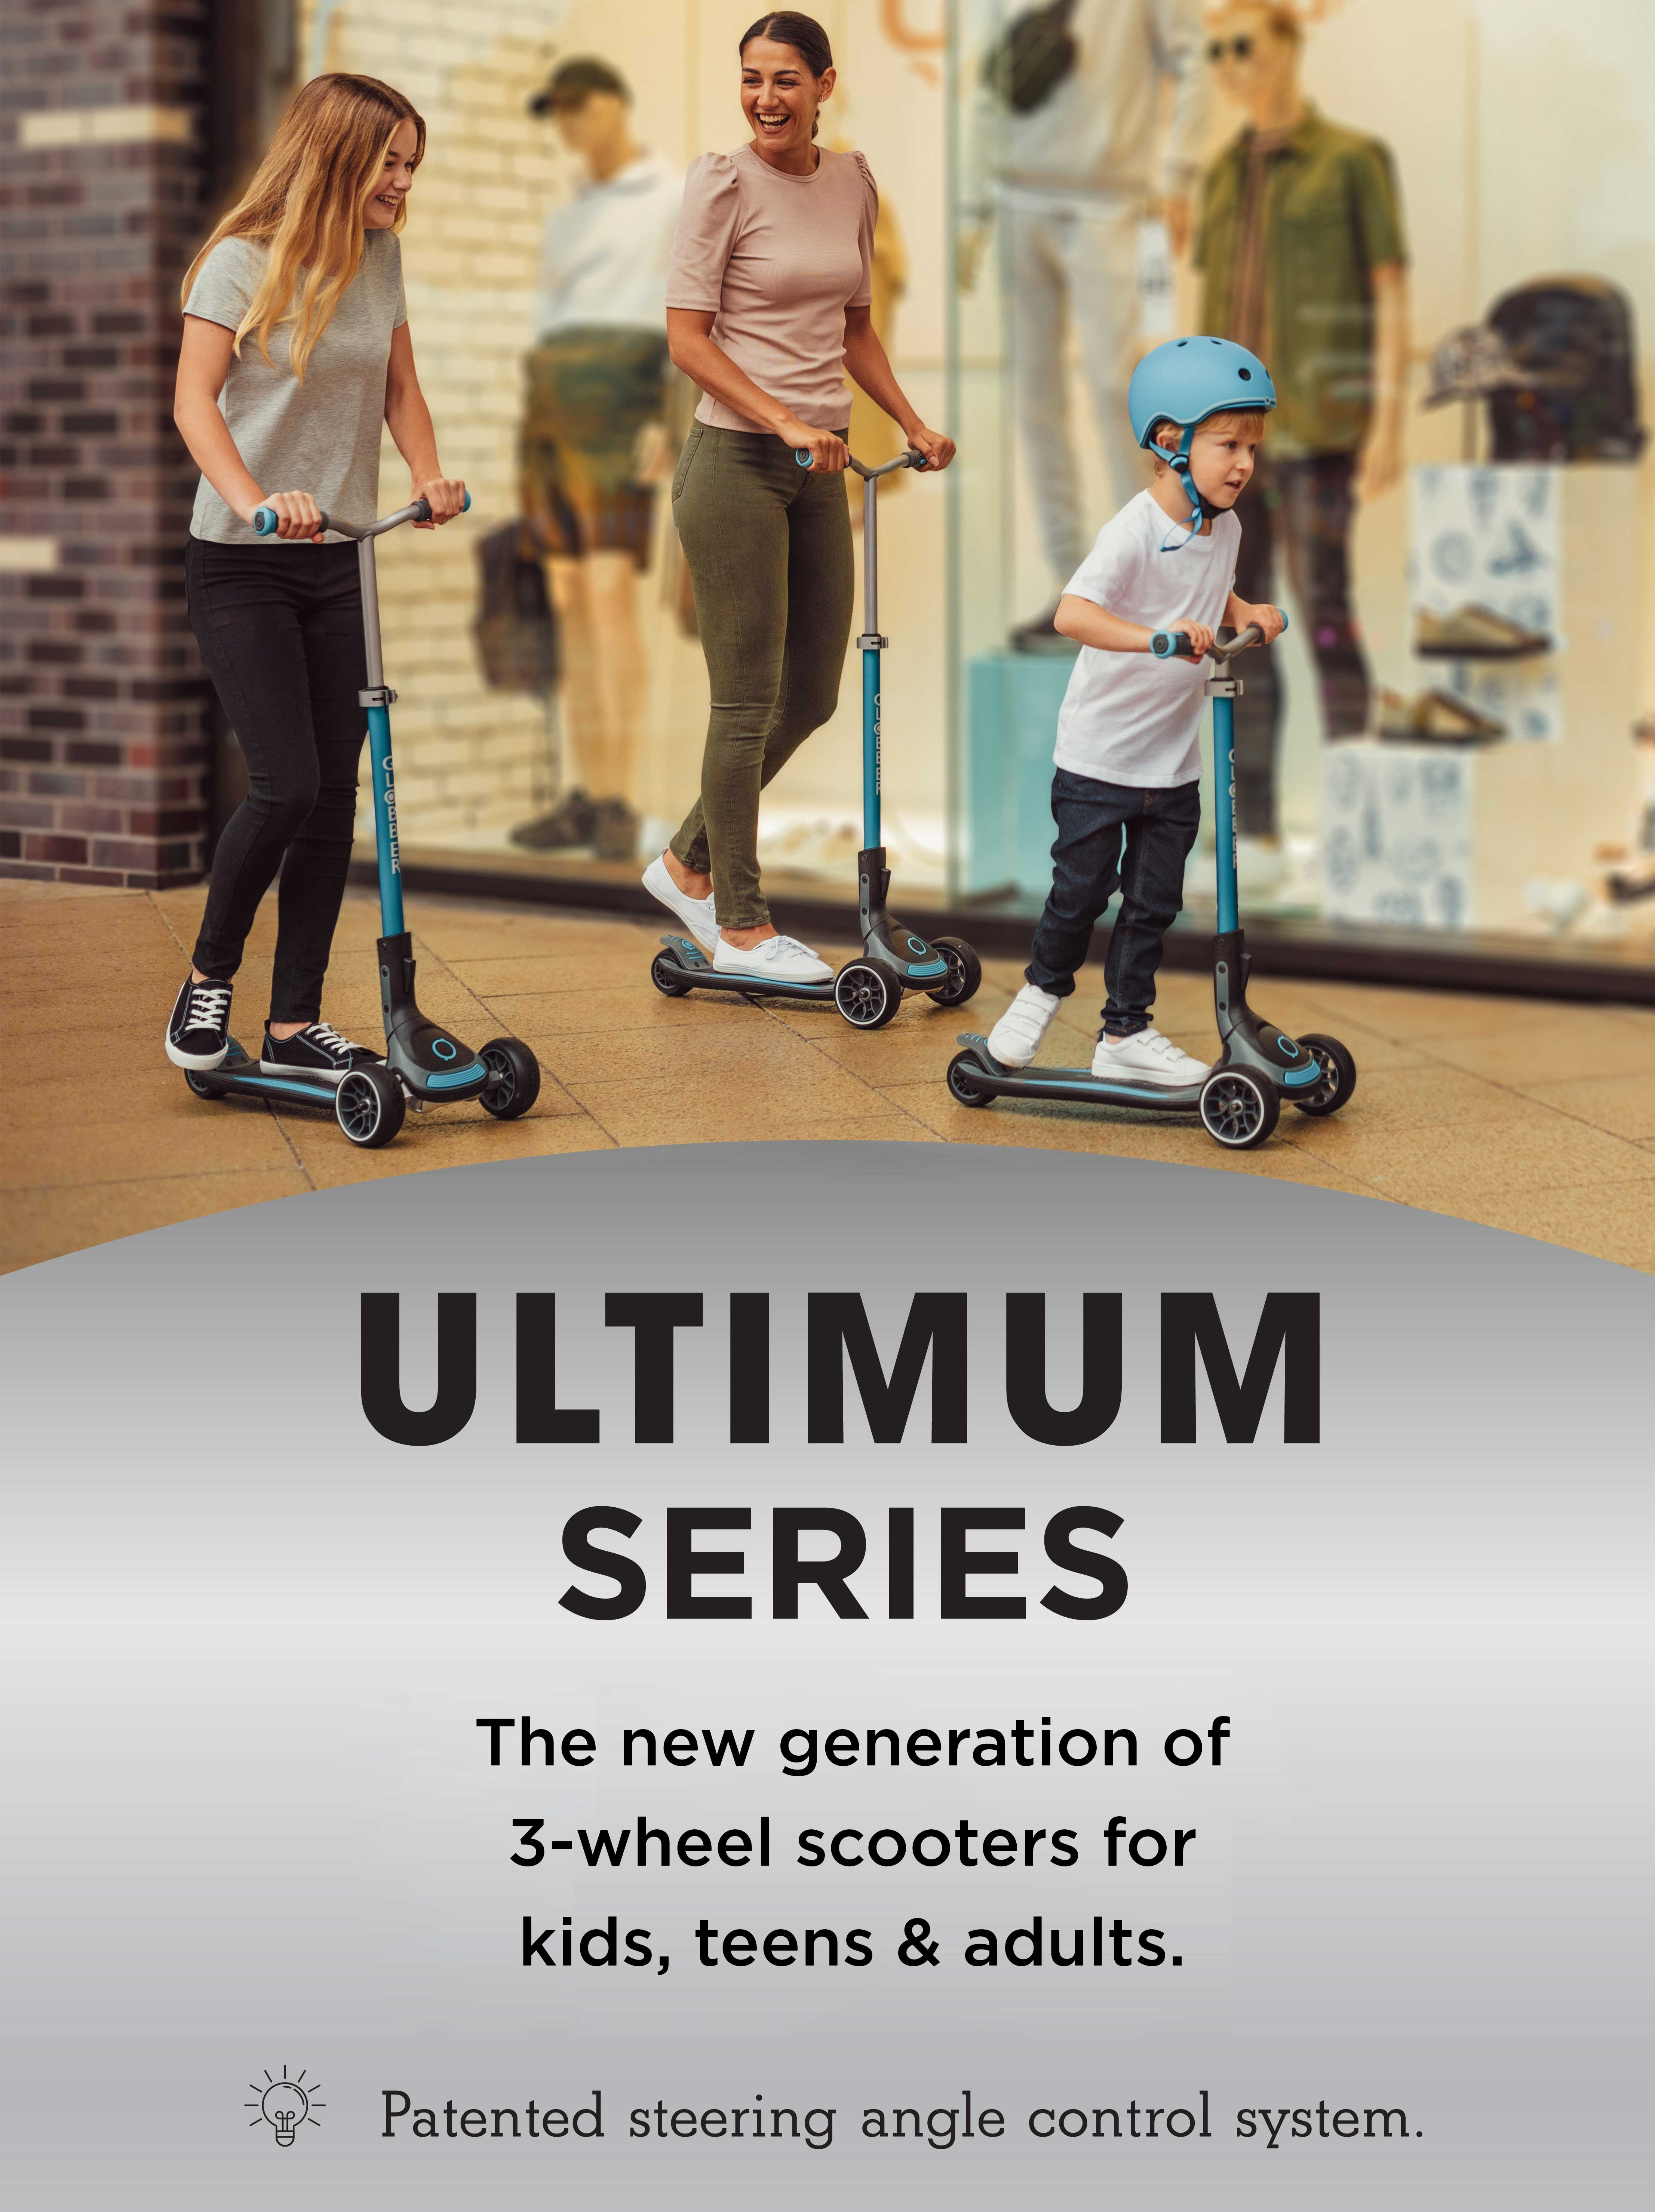 The new generation of 3-wheel scooters for kids & teens